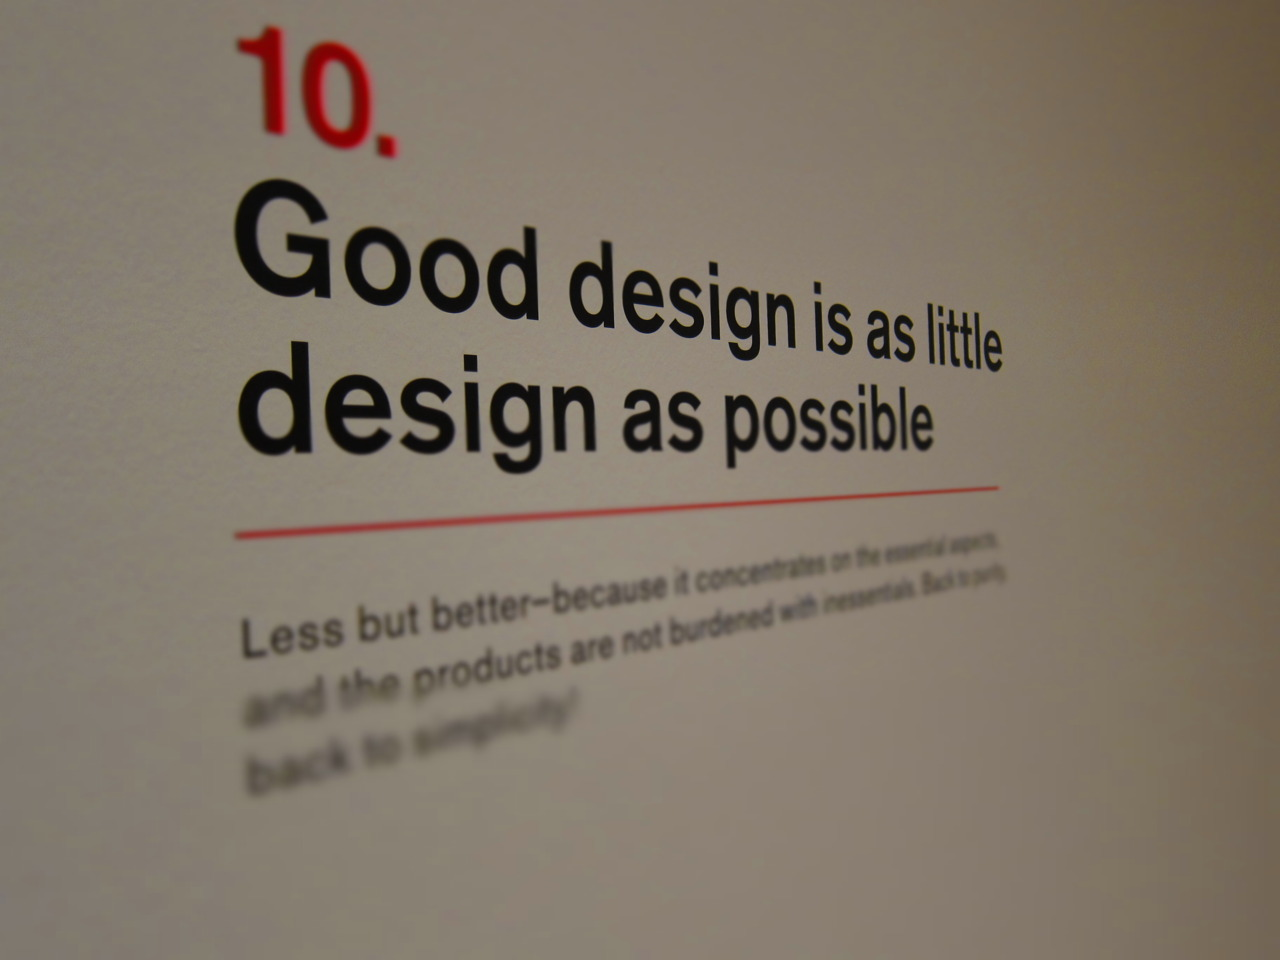 A quotation from the Dieter Rams exhibit at SFMOMA.